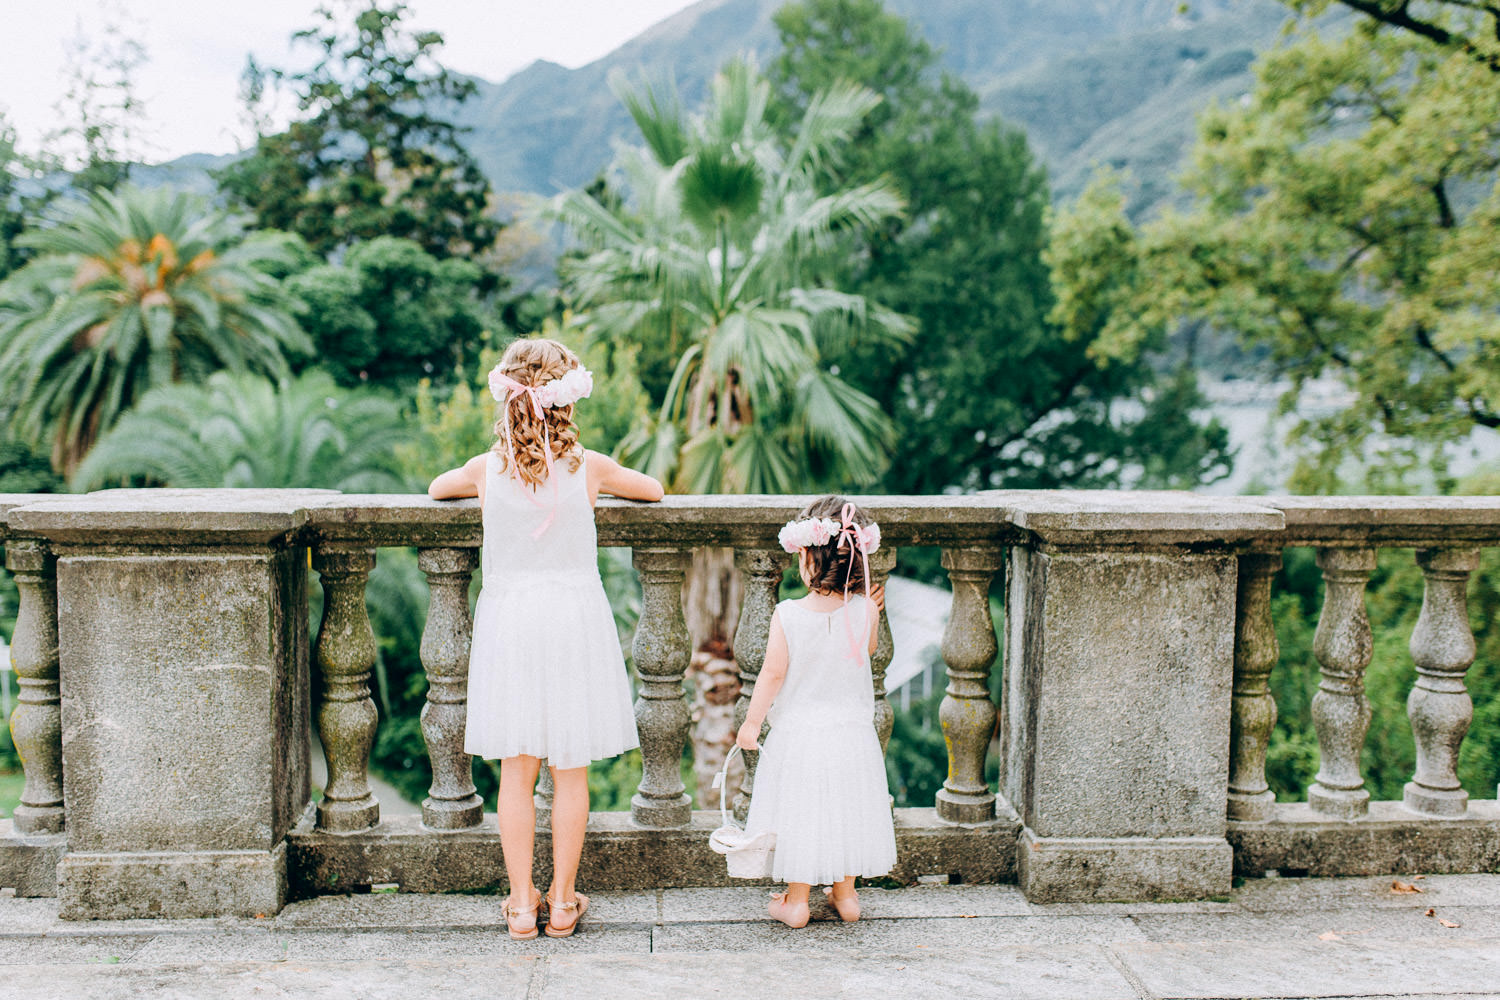 davidandkathrin-com-ticino-brissago-wedding-photographer-048